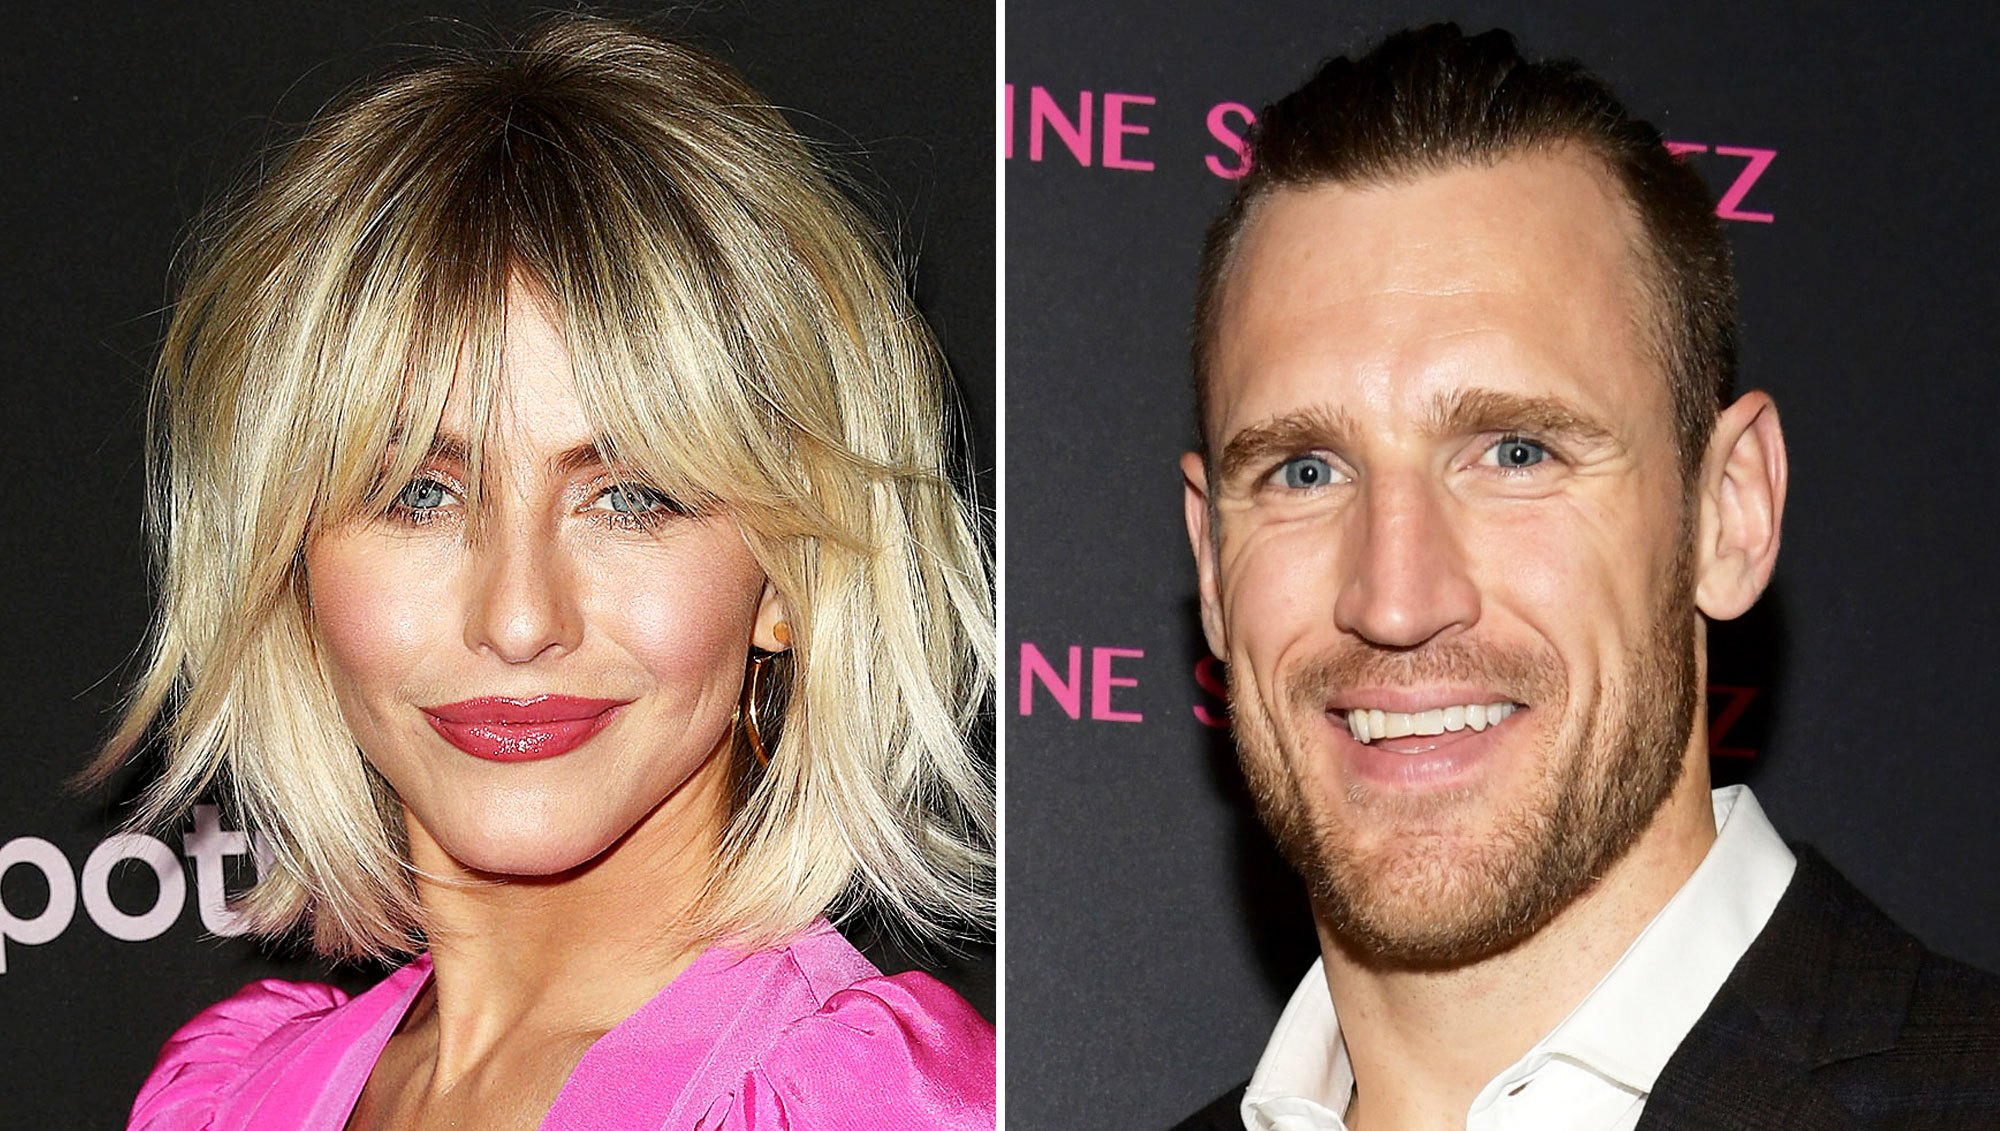 Julianne Hough Believes 'the Ugly Parts' Are the 'Best Parts' in Her Marriage to Brooks Laich